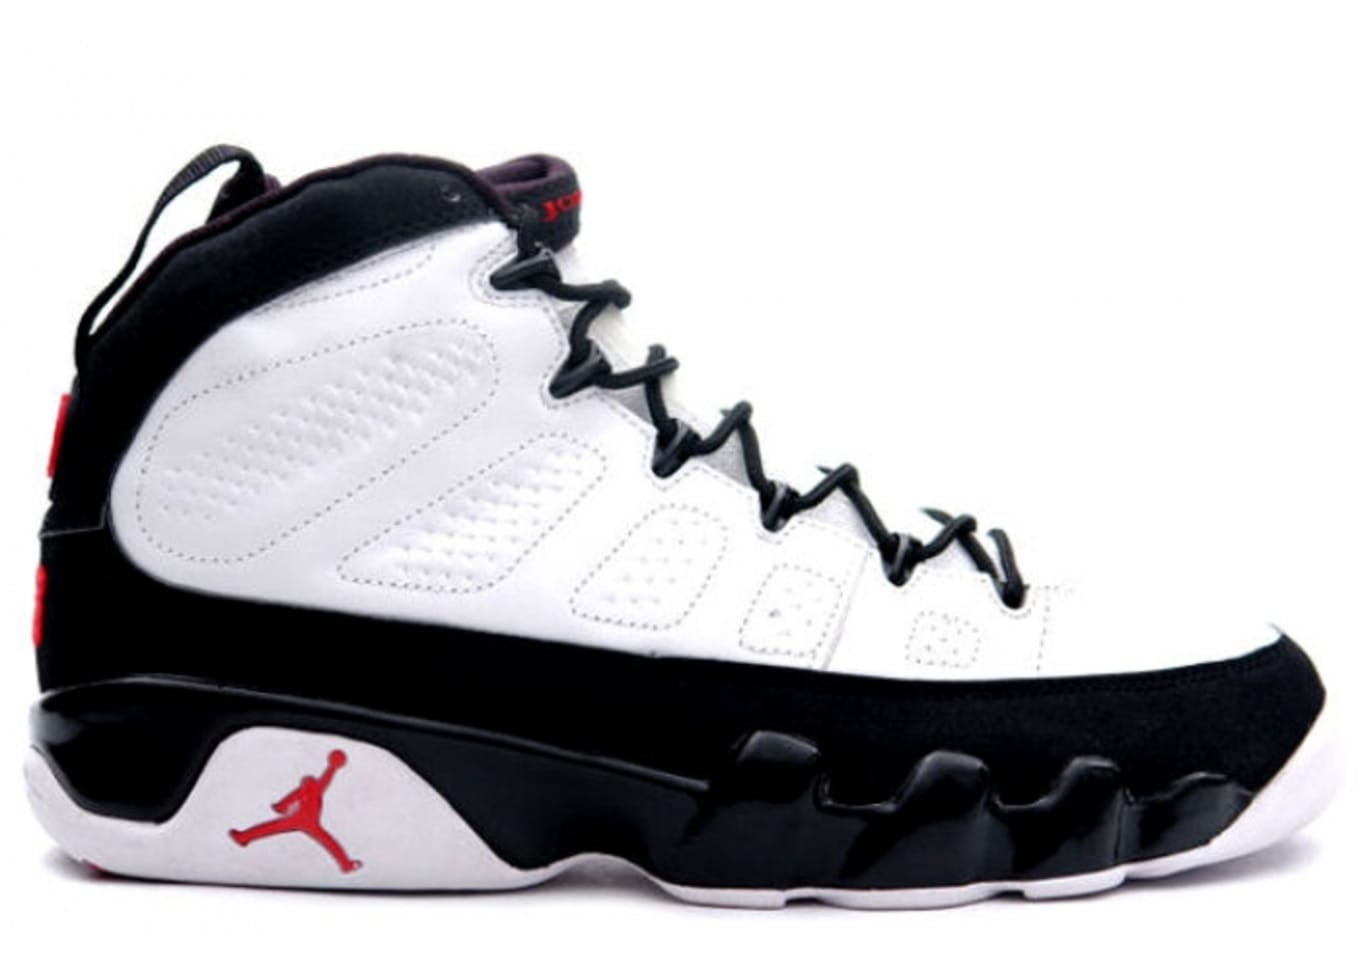 45beca8e358 The Air Jordan 9 Price Guide | Sole Collector